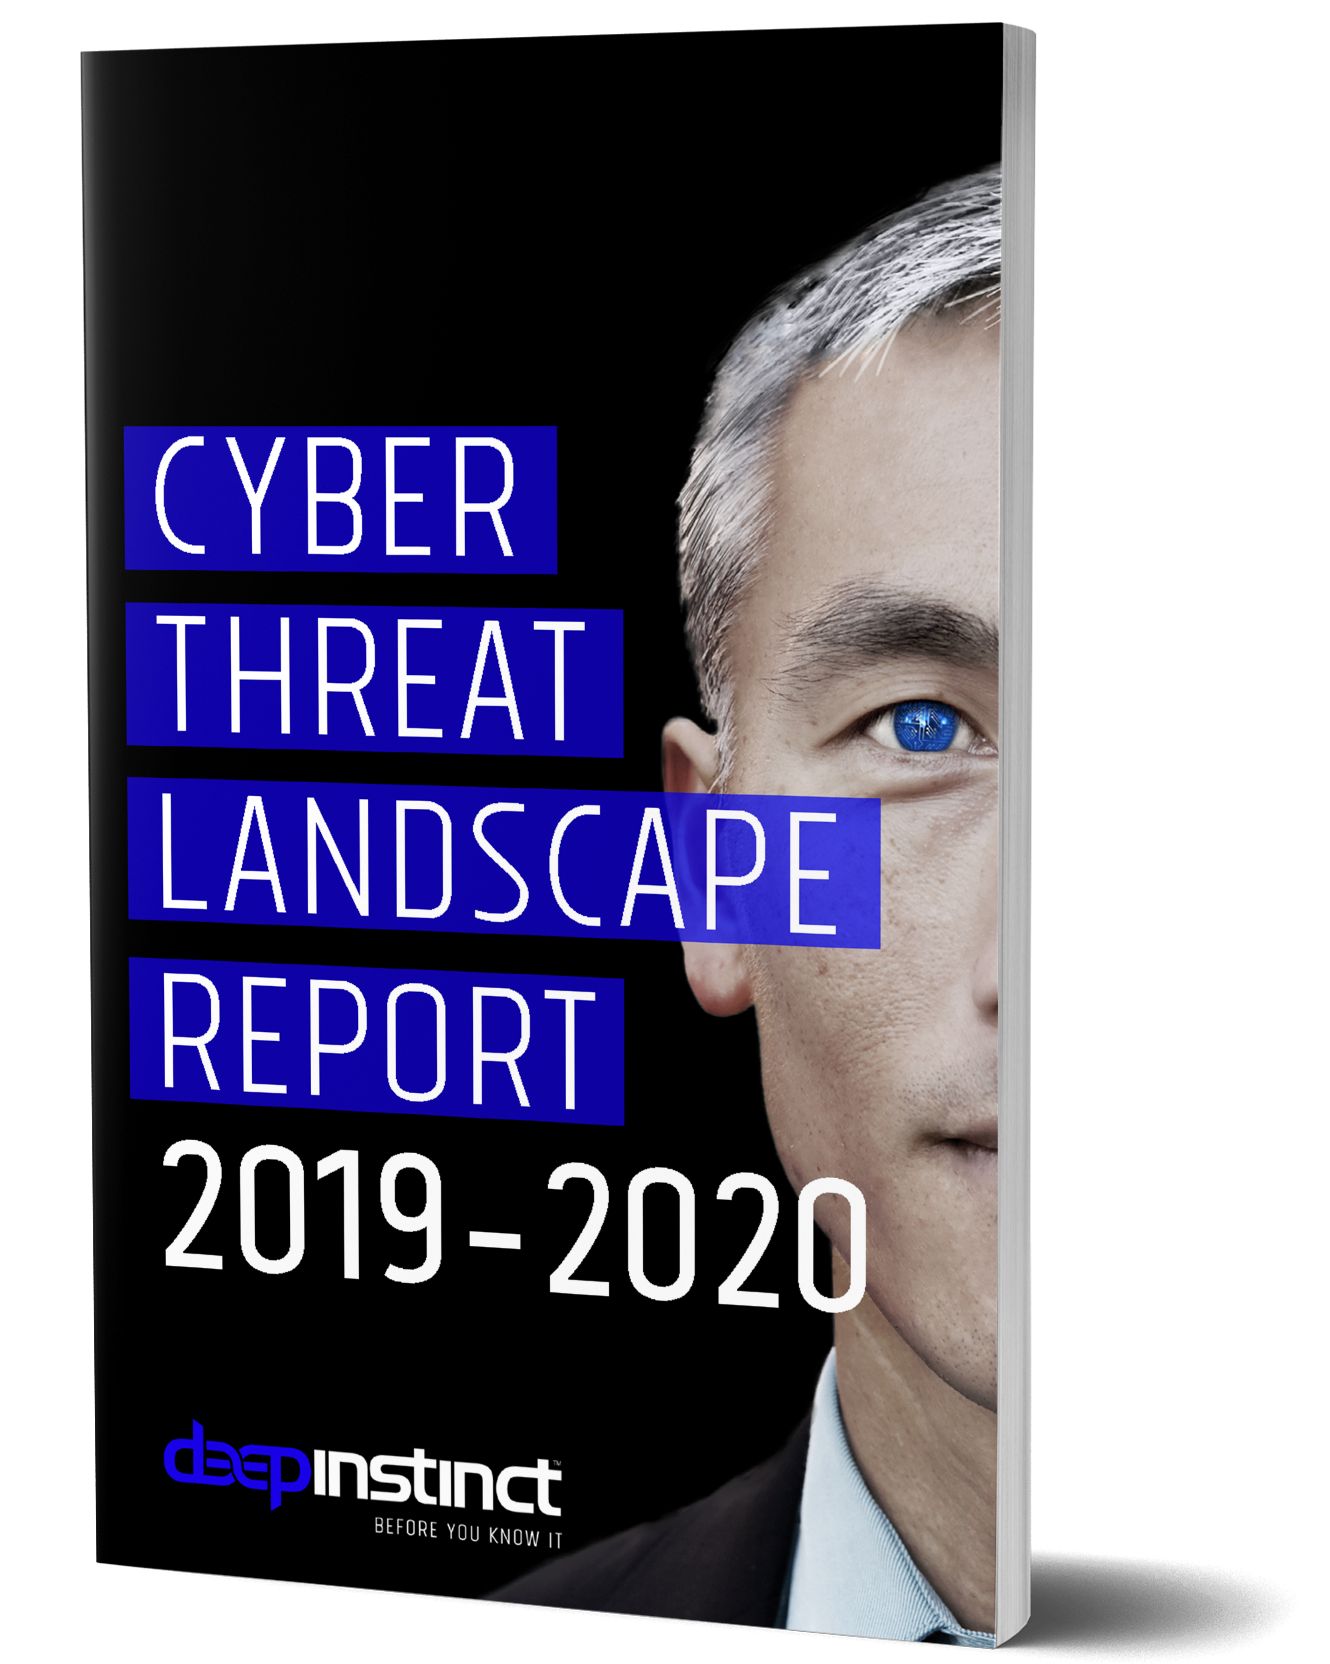 threatreport2019_mockup_book-1